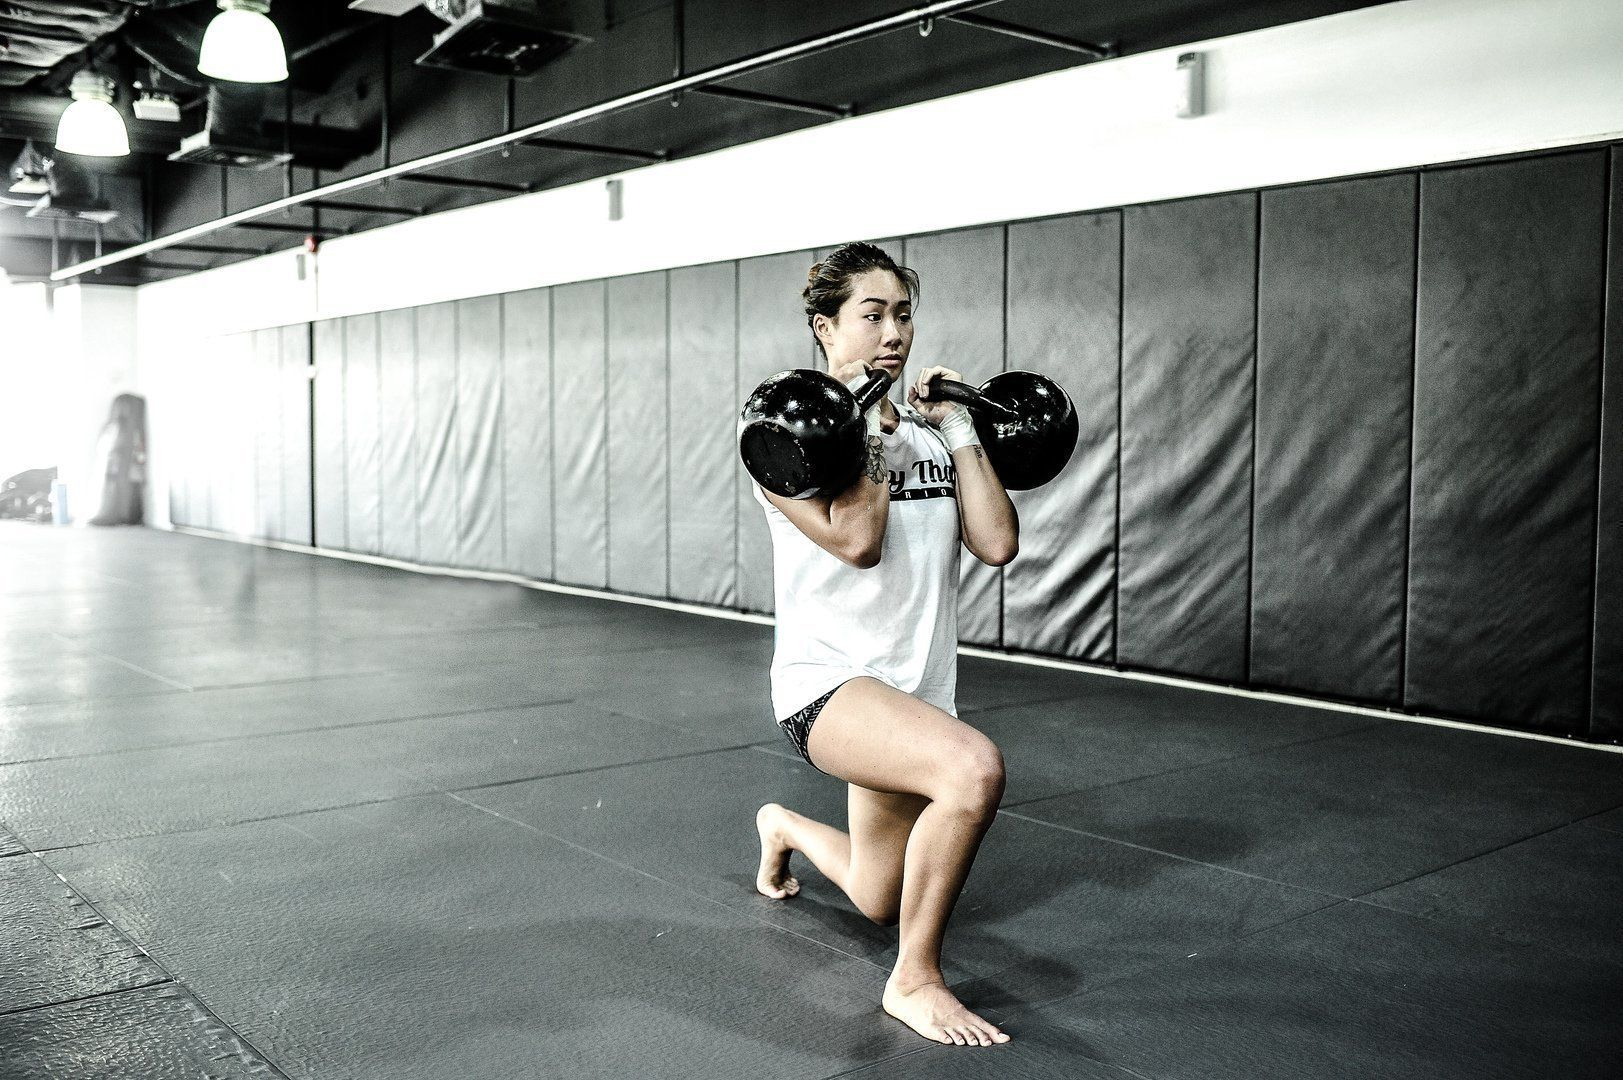 Improve Your Takedowns With Just 4 Simple Exercises ...